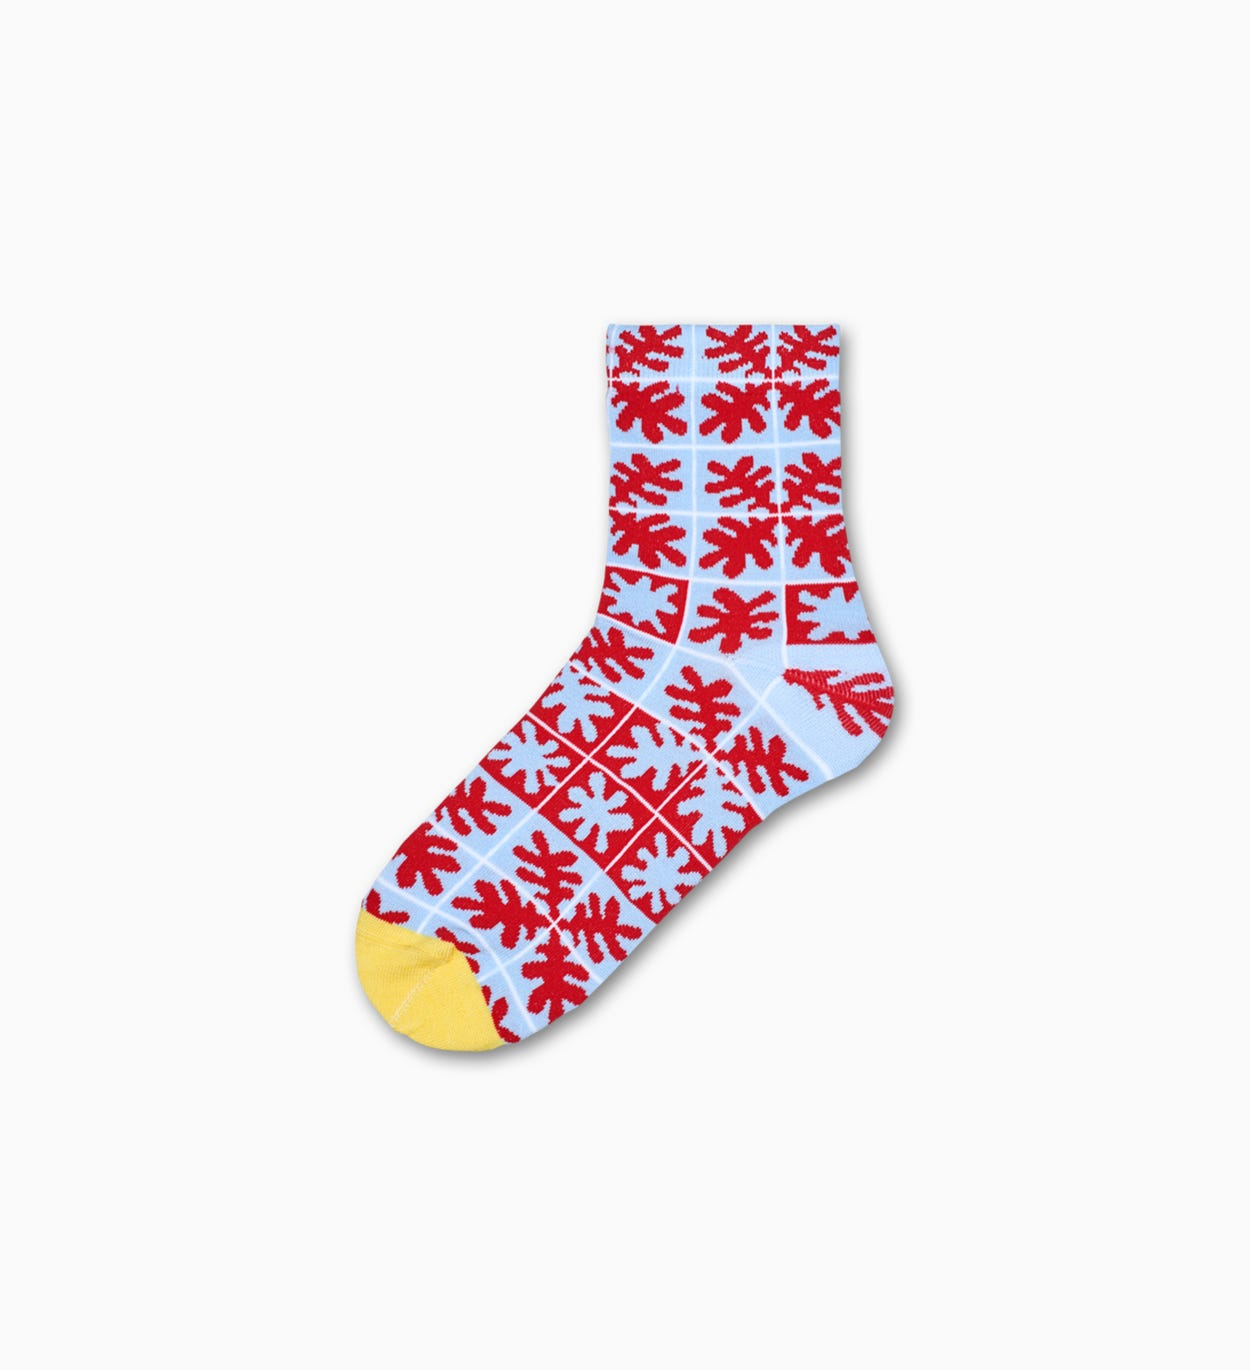 Women's Ankle Socks: Emilia - Red & Light Blue | Hysteria